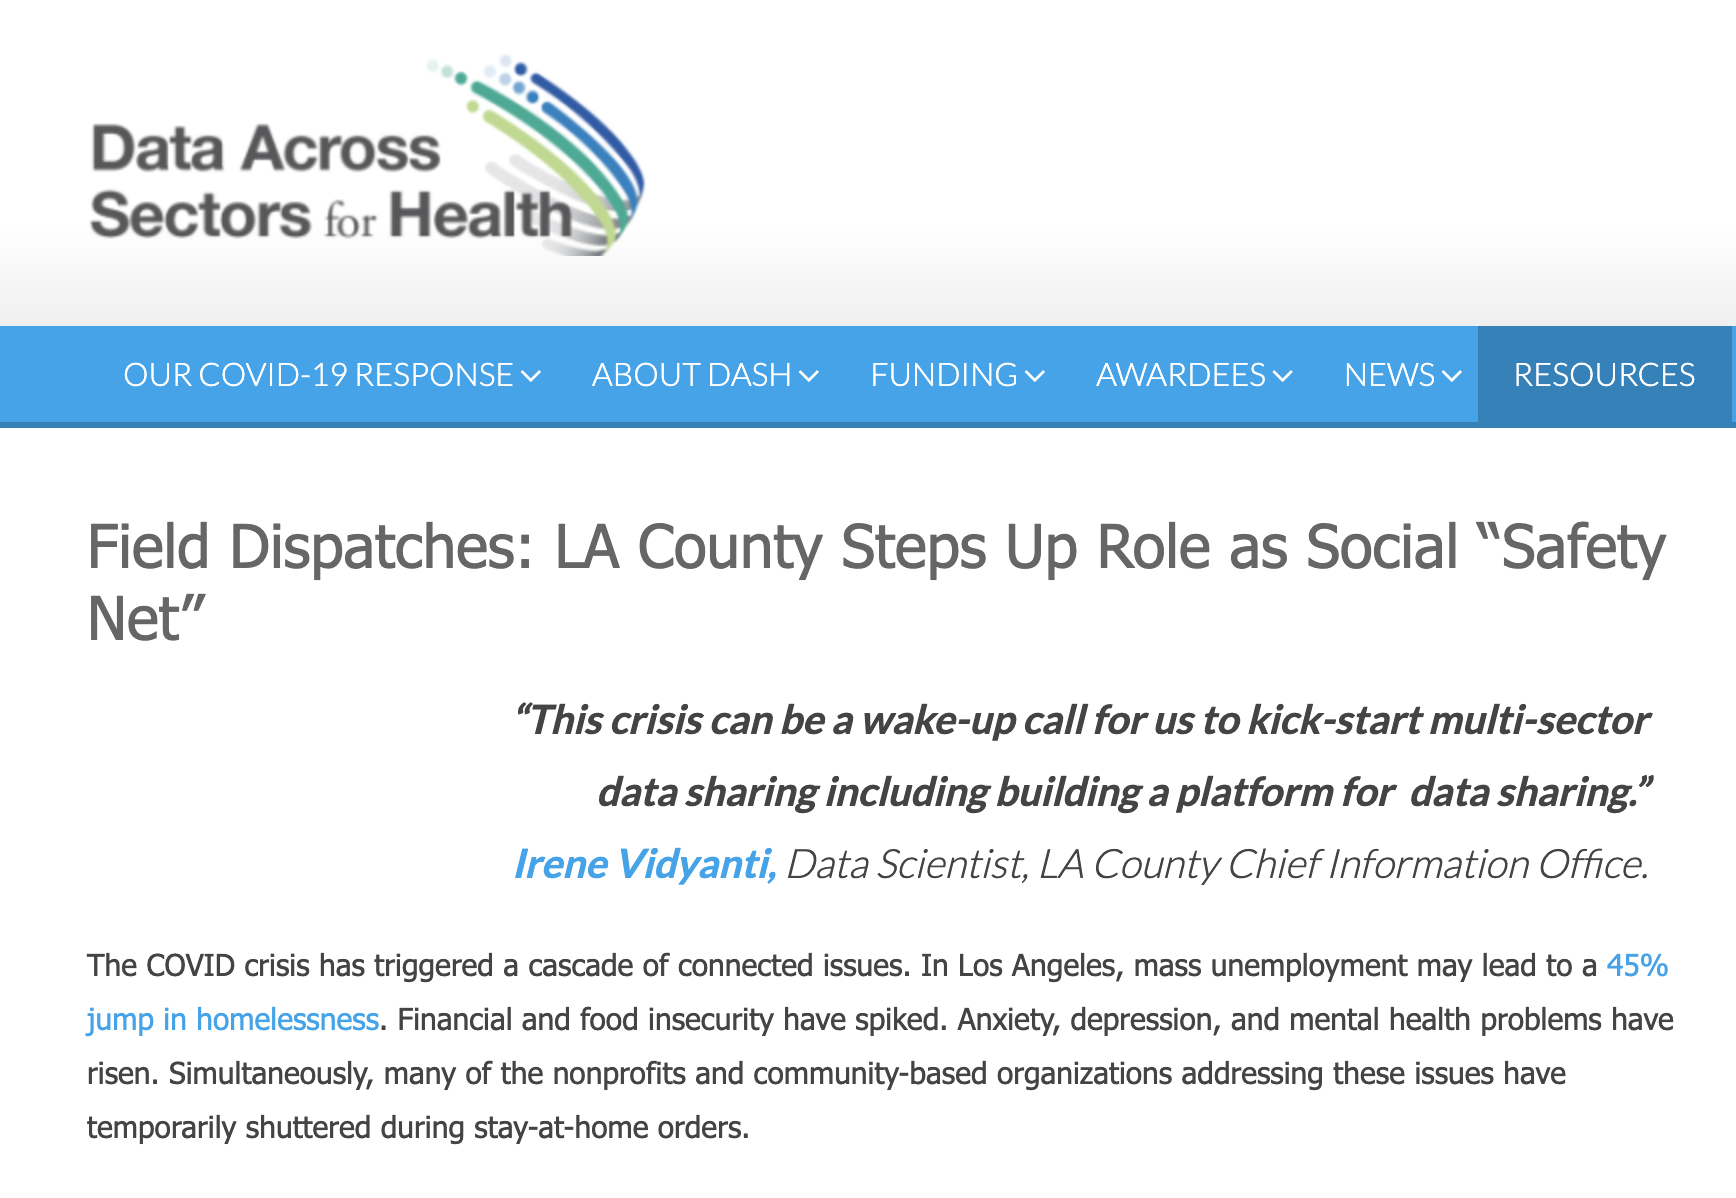 """Field Dispatches: LA County Steps Up Role as Social """"Safety Net"""""""